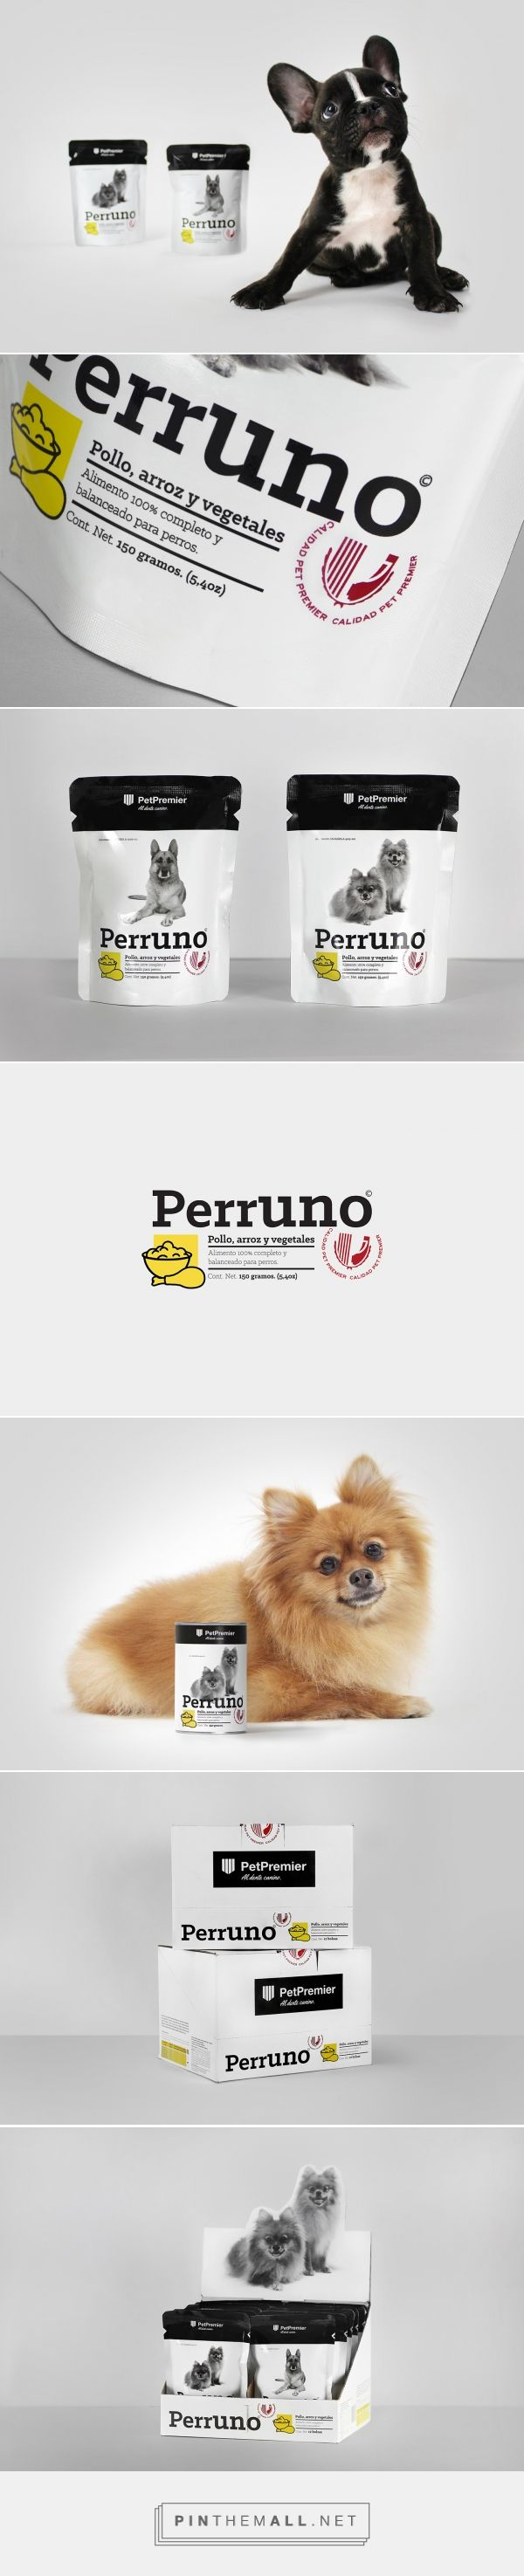 Bienal   Comunicación - Pet Premier packaging  PerrUNO curated by Packaging Diva PD.